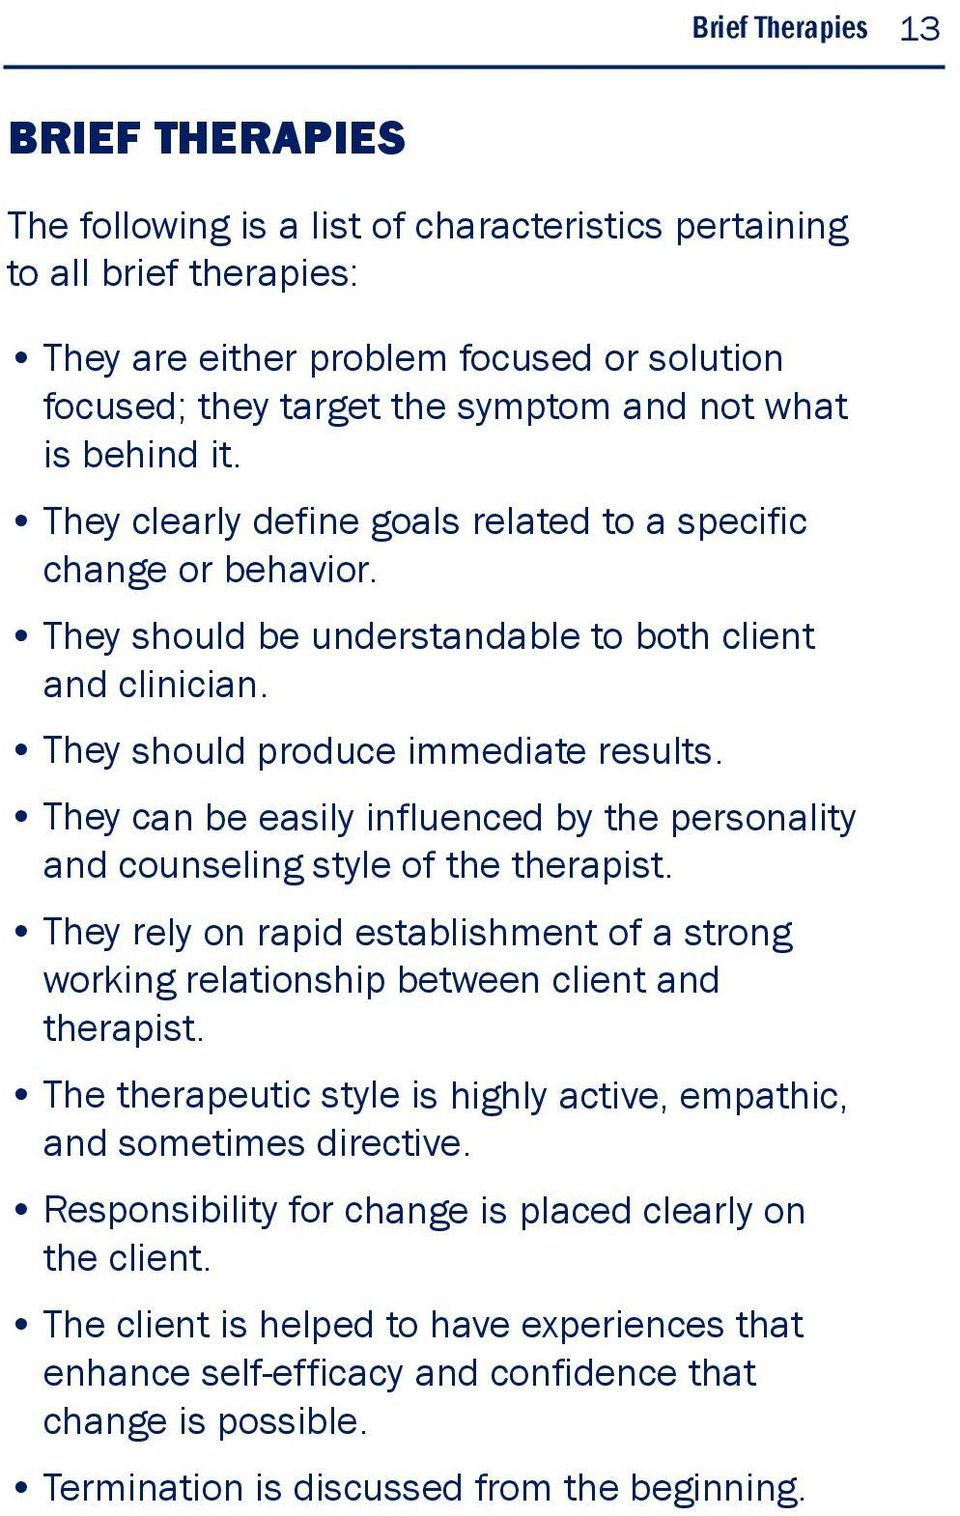 They can be easily influenced by the personality and counseling style of the therapist. They rely on rapid establishment of a strong working relationship between client and therapist.